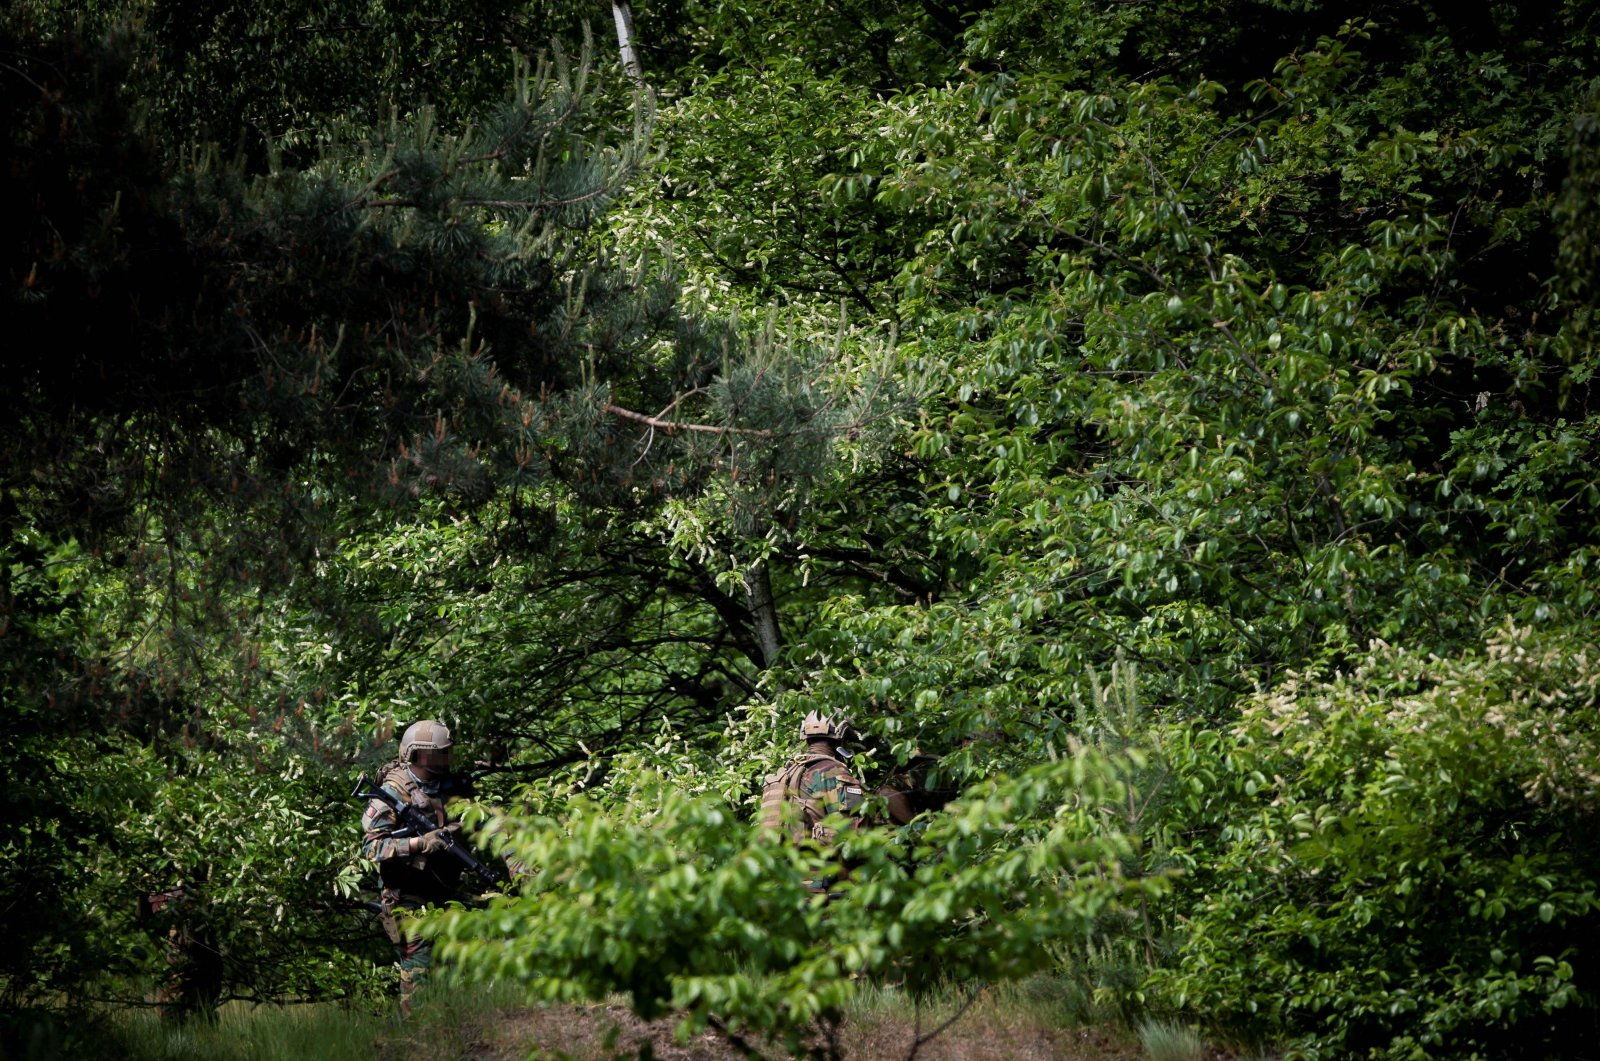 Soldiers search for Jurgen Conings, a heavily armed Belgian soldier with far-right views, in Nationaal Park Hoge Kempen in Maasmechelen, Belgium, on June 4, 2021. (AFP Photo)